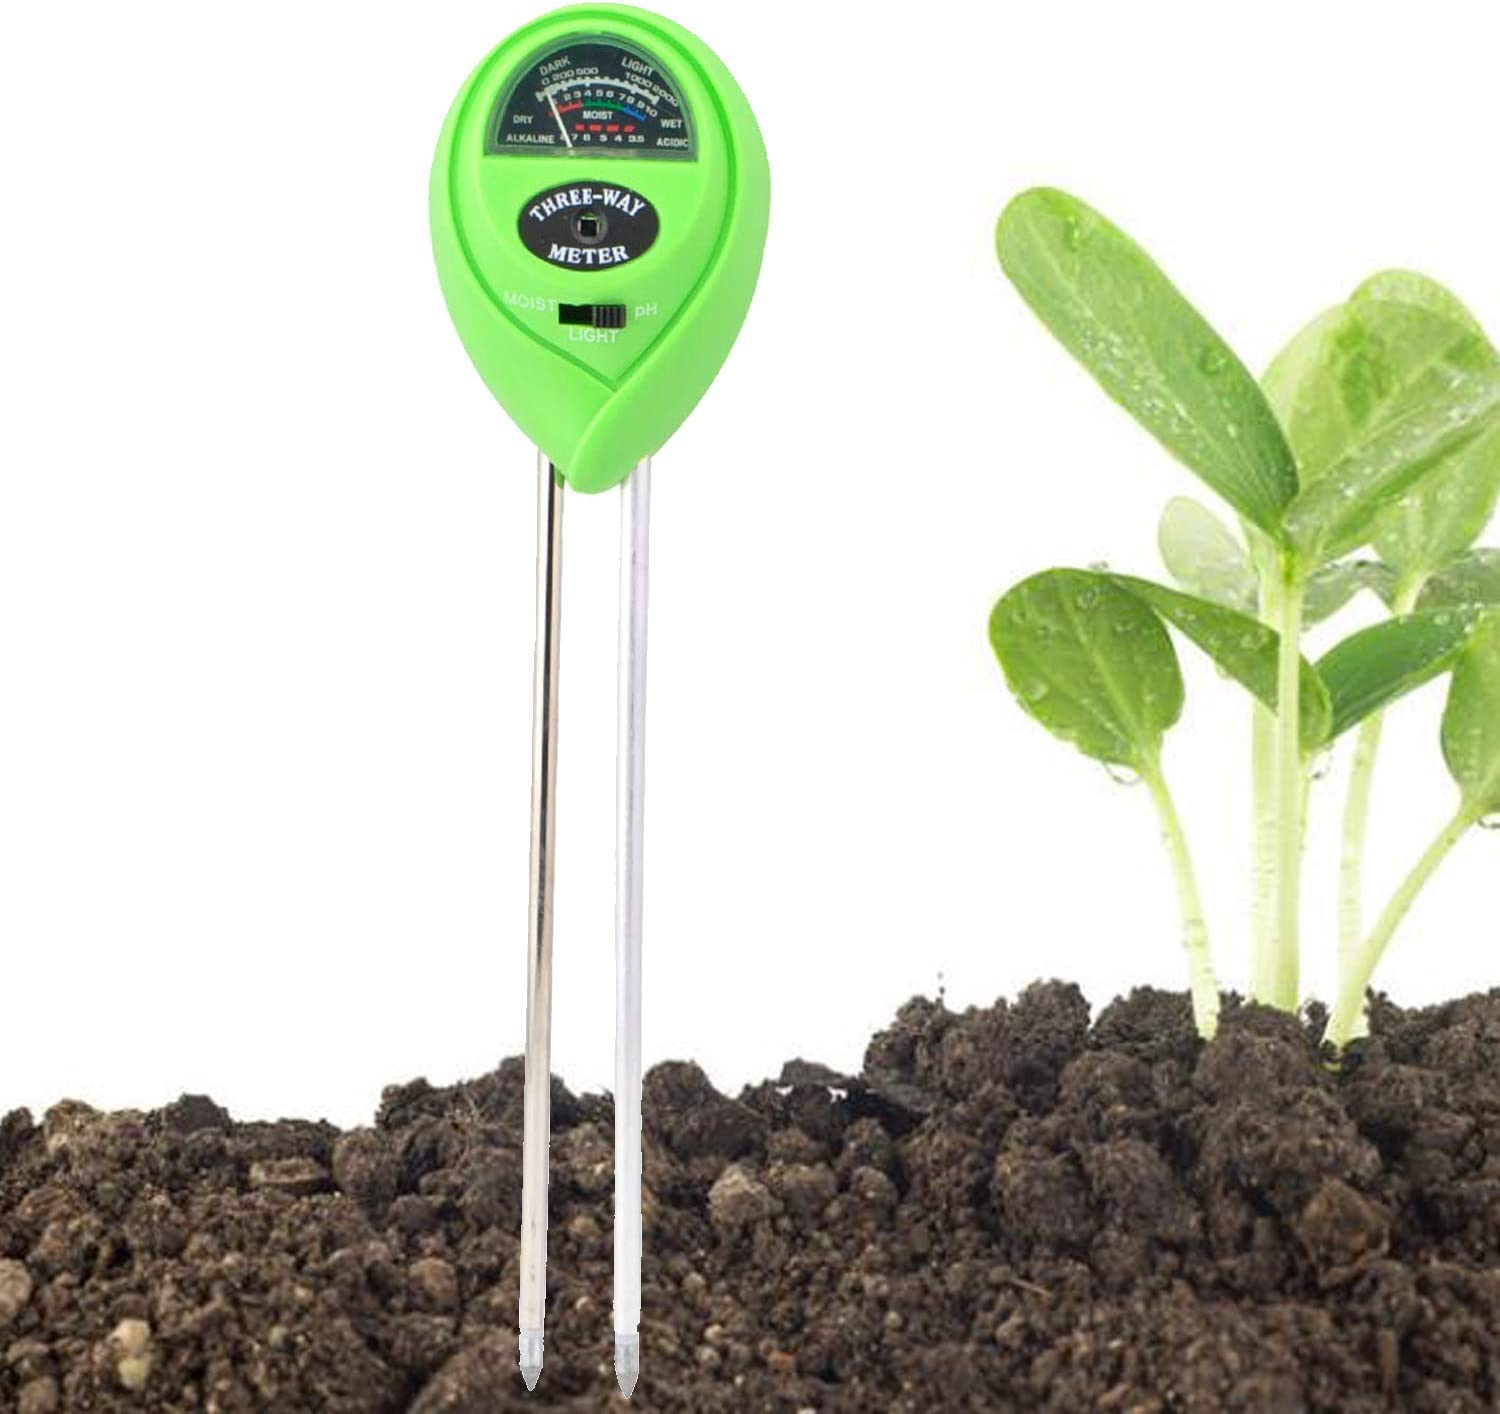 MAOXIC Soil pH Meter, 3-in-1 Soil Water Test Kit with Moisture, Light and PH Tester for Potted Plants, Indoor Plant, Outdoor Plants, House Plants, Lawns, Garden, Vegetables, Farm (No Battery Needed)